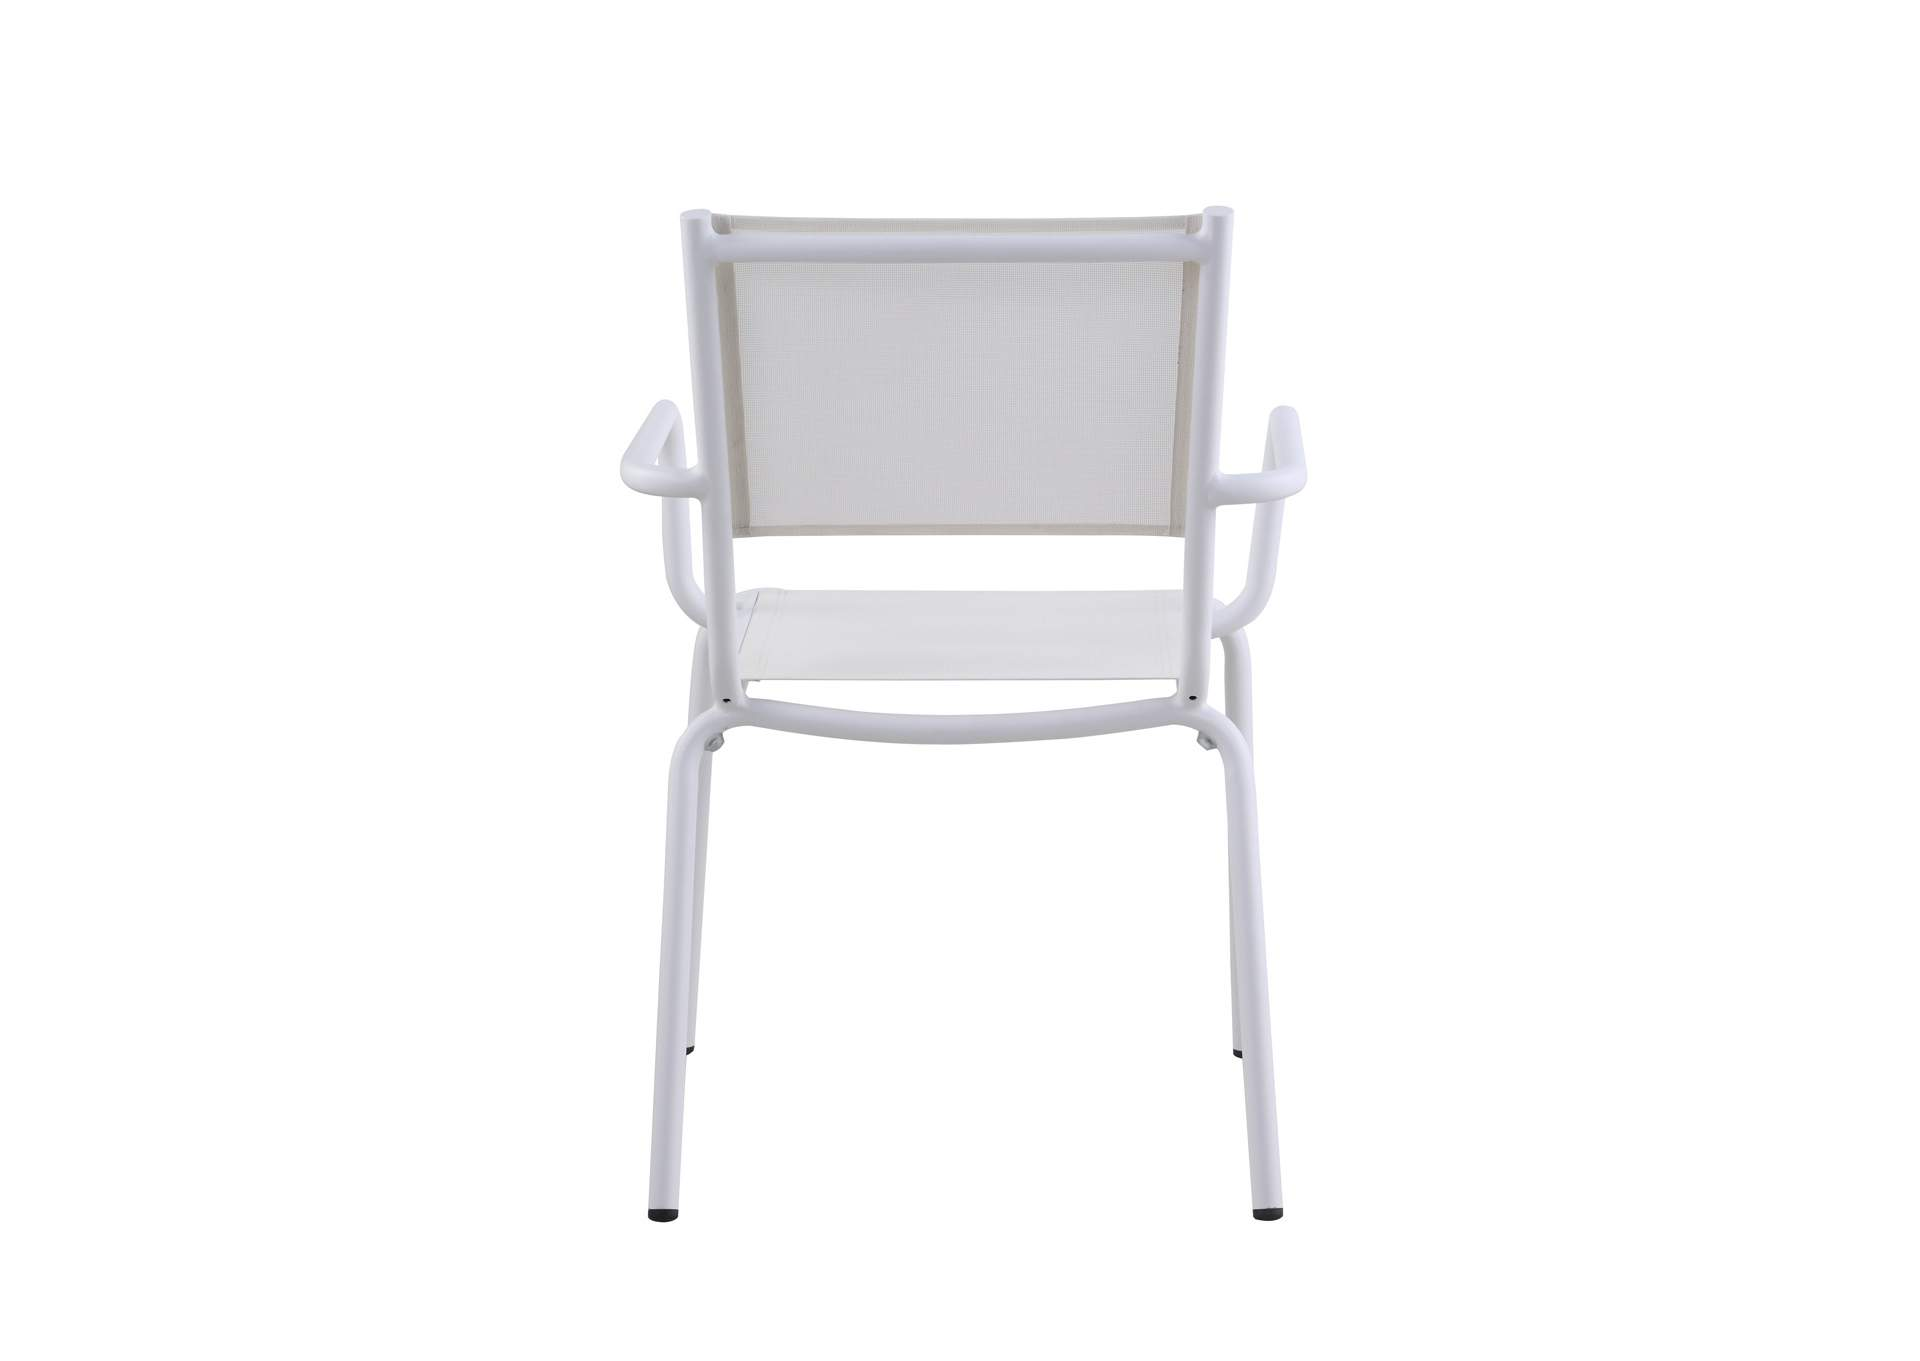 Ventura Matte White Outdoor Arm Chair (Set of 4) w/ Aluminum Frame,Chintaly Imports